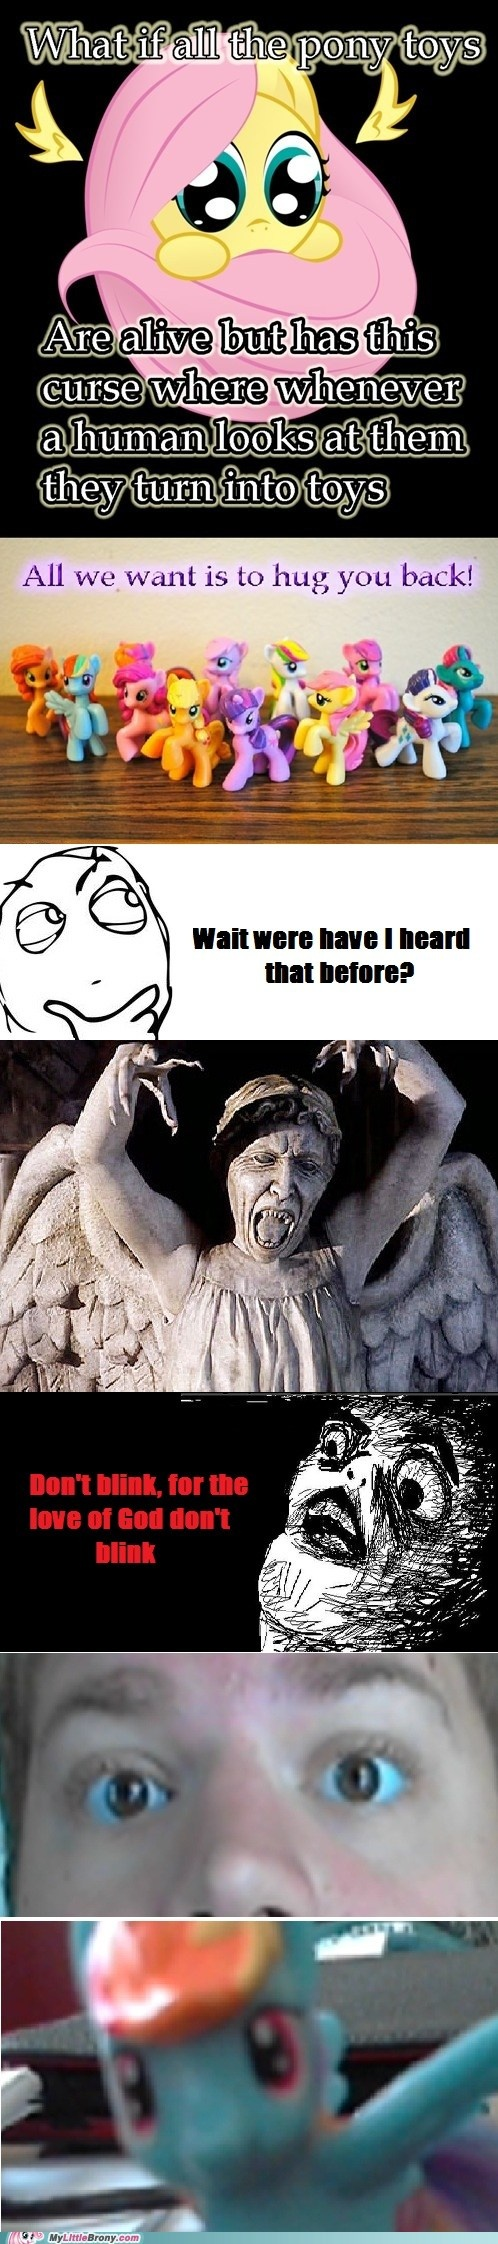 Weeping Angels In Pony Form? Oh no.... Dr. Who save us